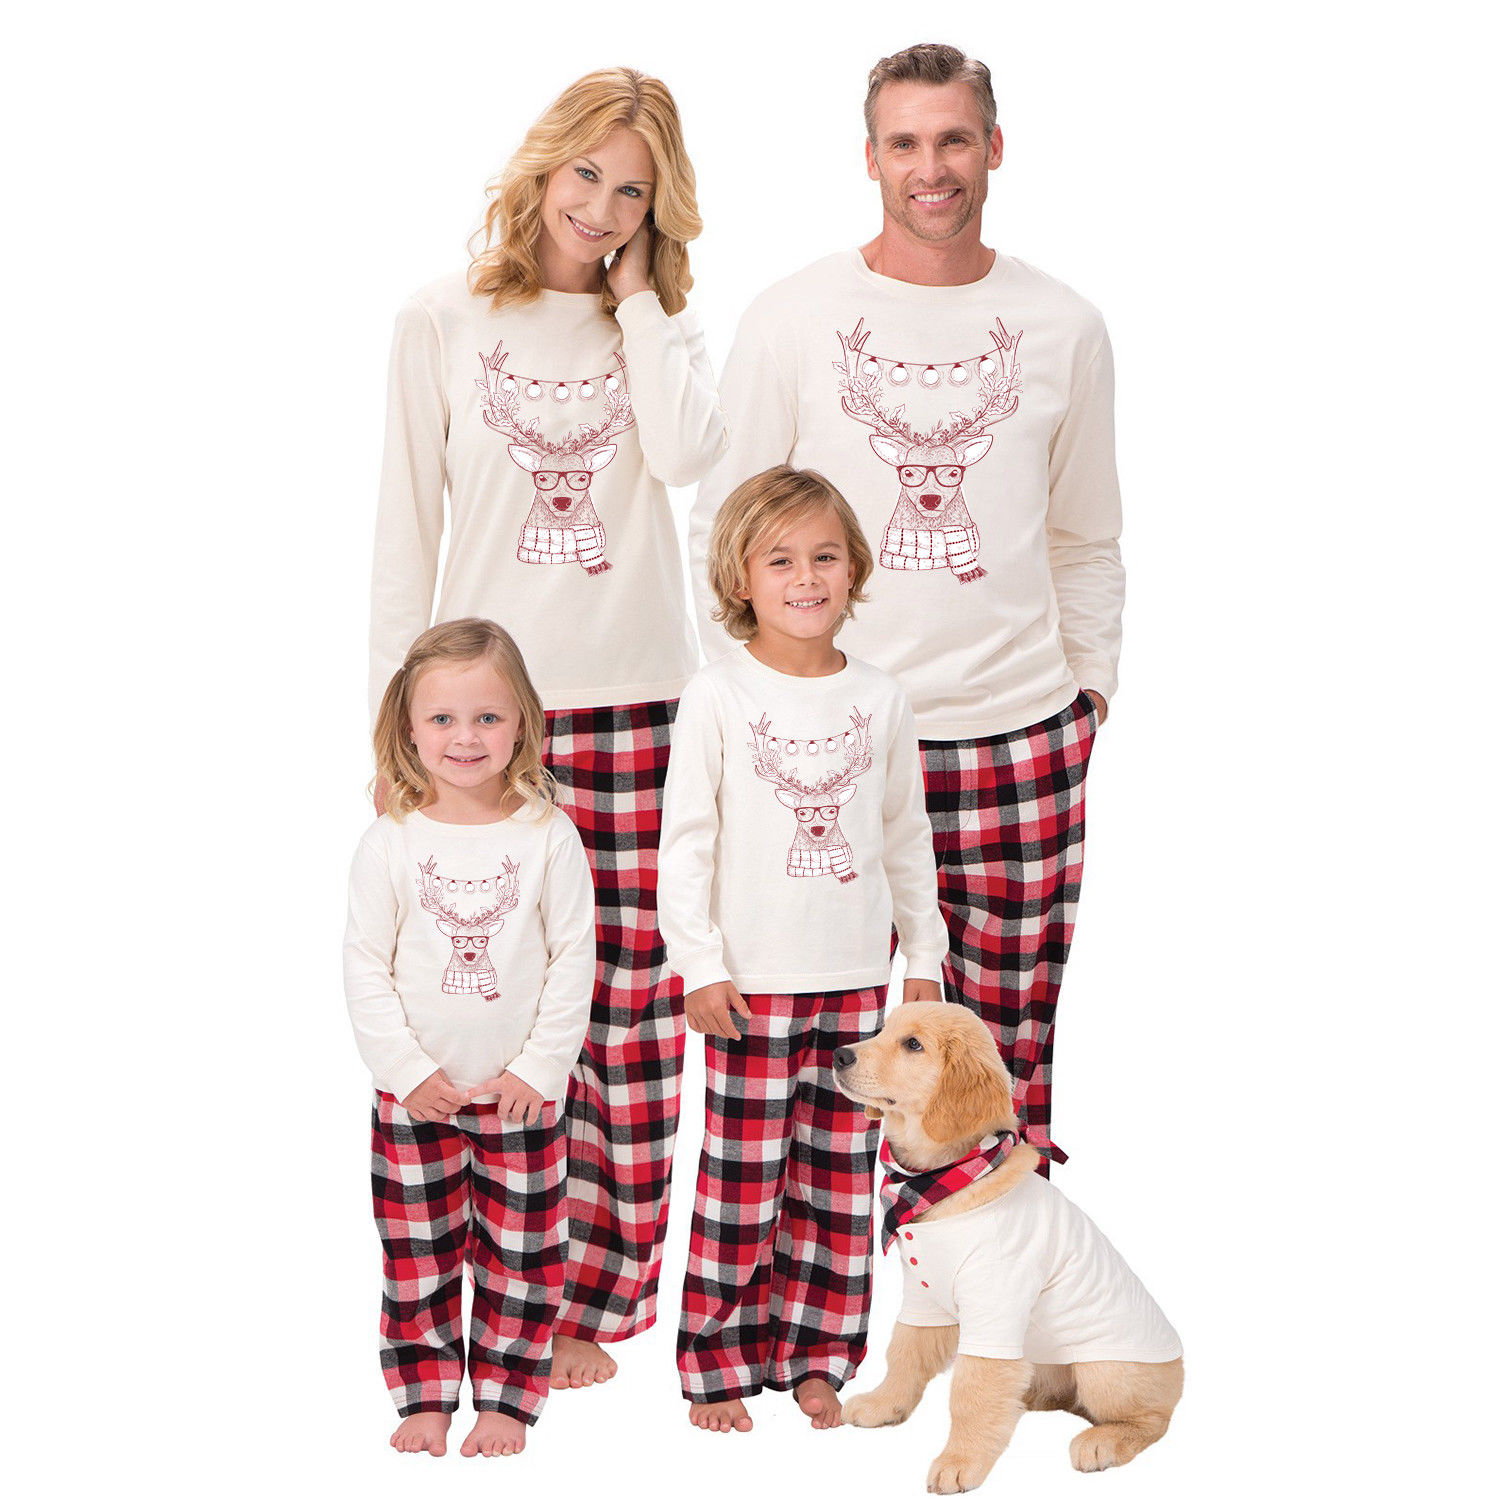 Family Christmas Pajamas Set Warm Adult Kids Girls Boy Mommy Sleepwear  Nightwear Mother Daughter Clothes Matching Family Outfits-in Matching Family  Outfits ... 18e7322c0